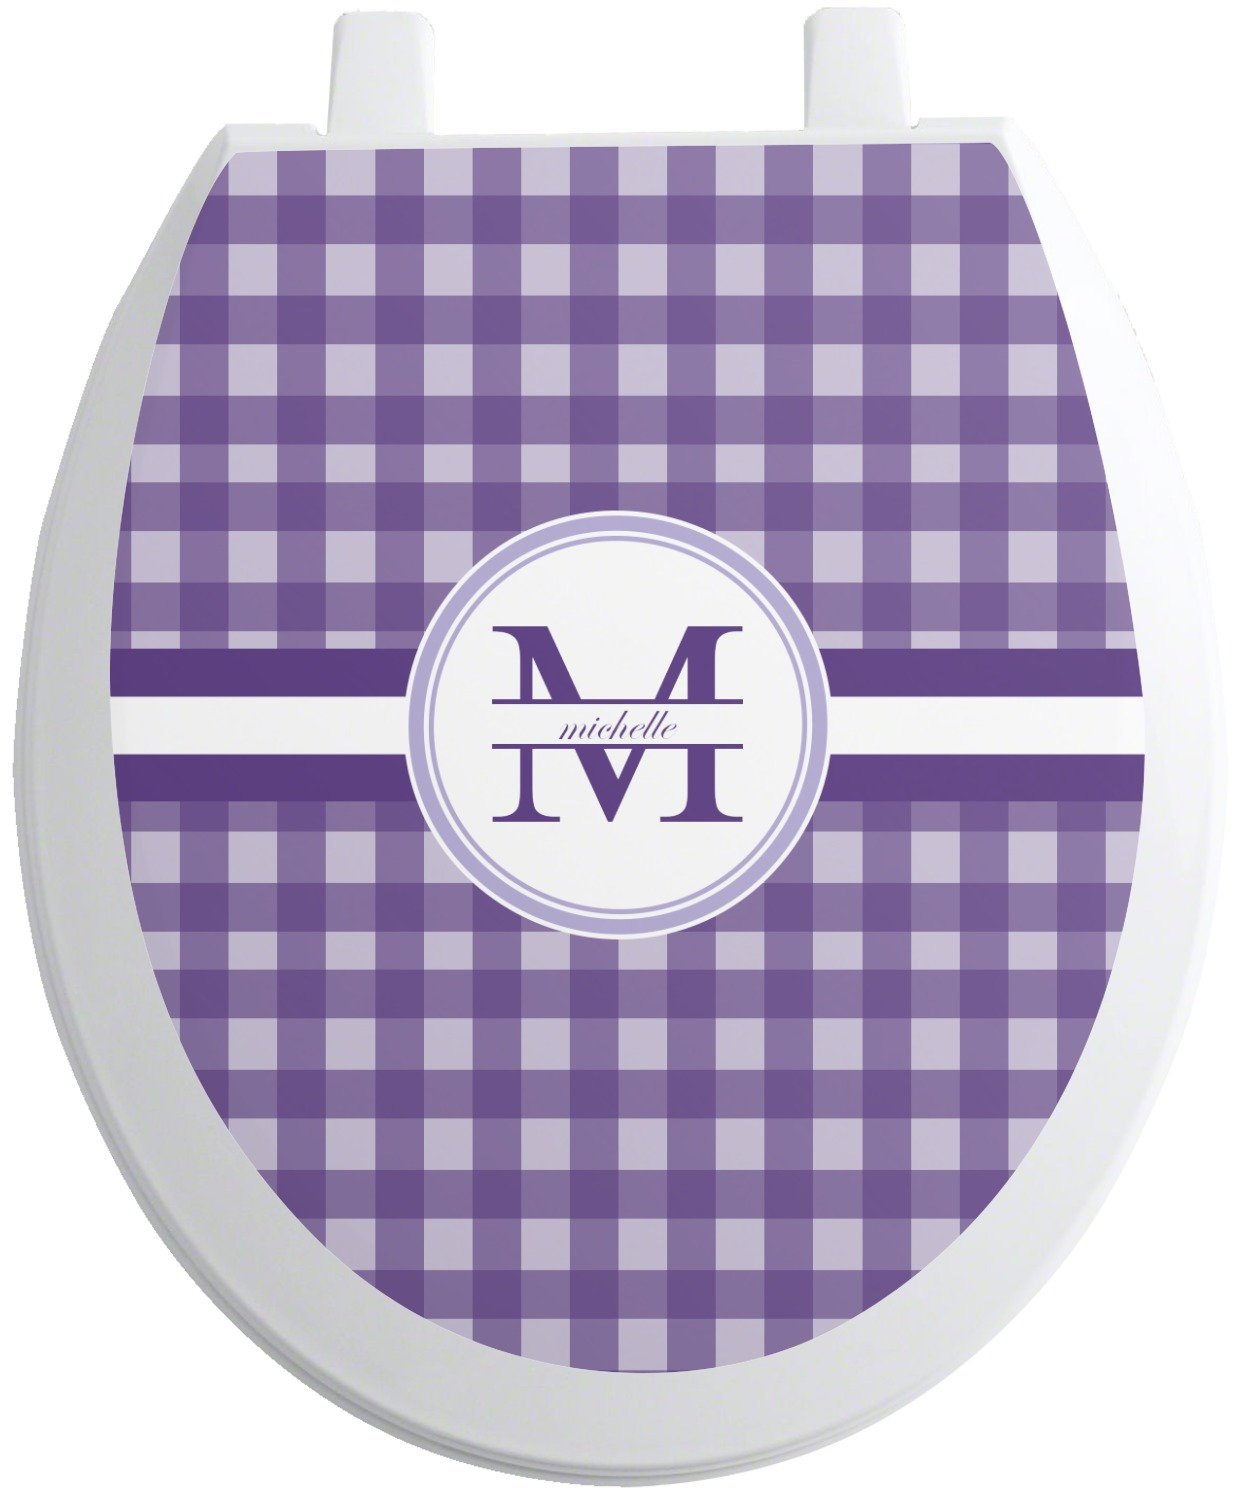 Astounding Gingham Print Toilet Seat Decal Personalized Theyellowbook Wood Chair Design Ideas Theyellowbookinfo